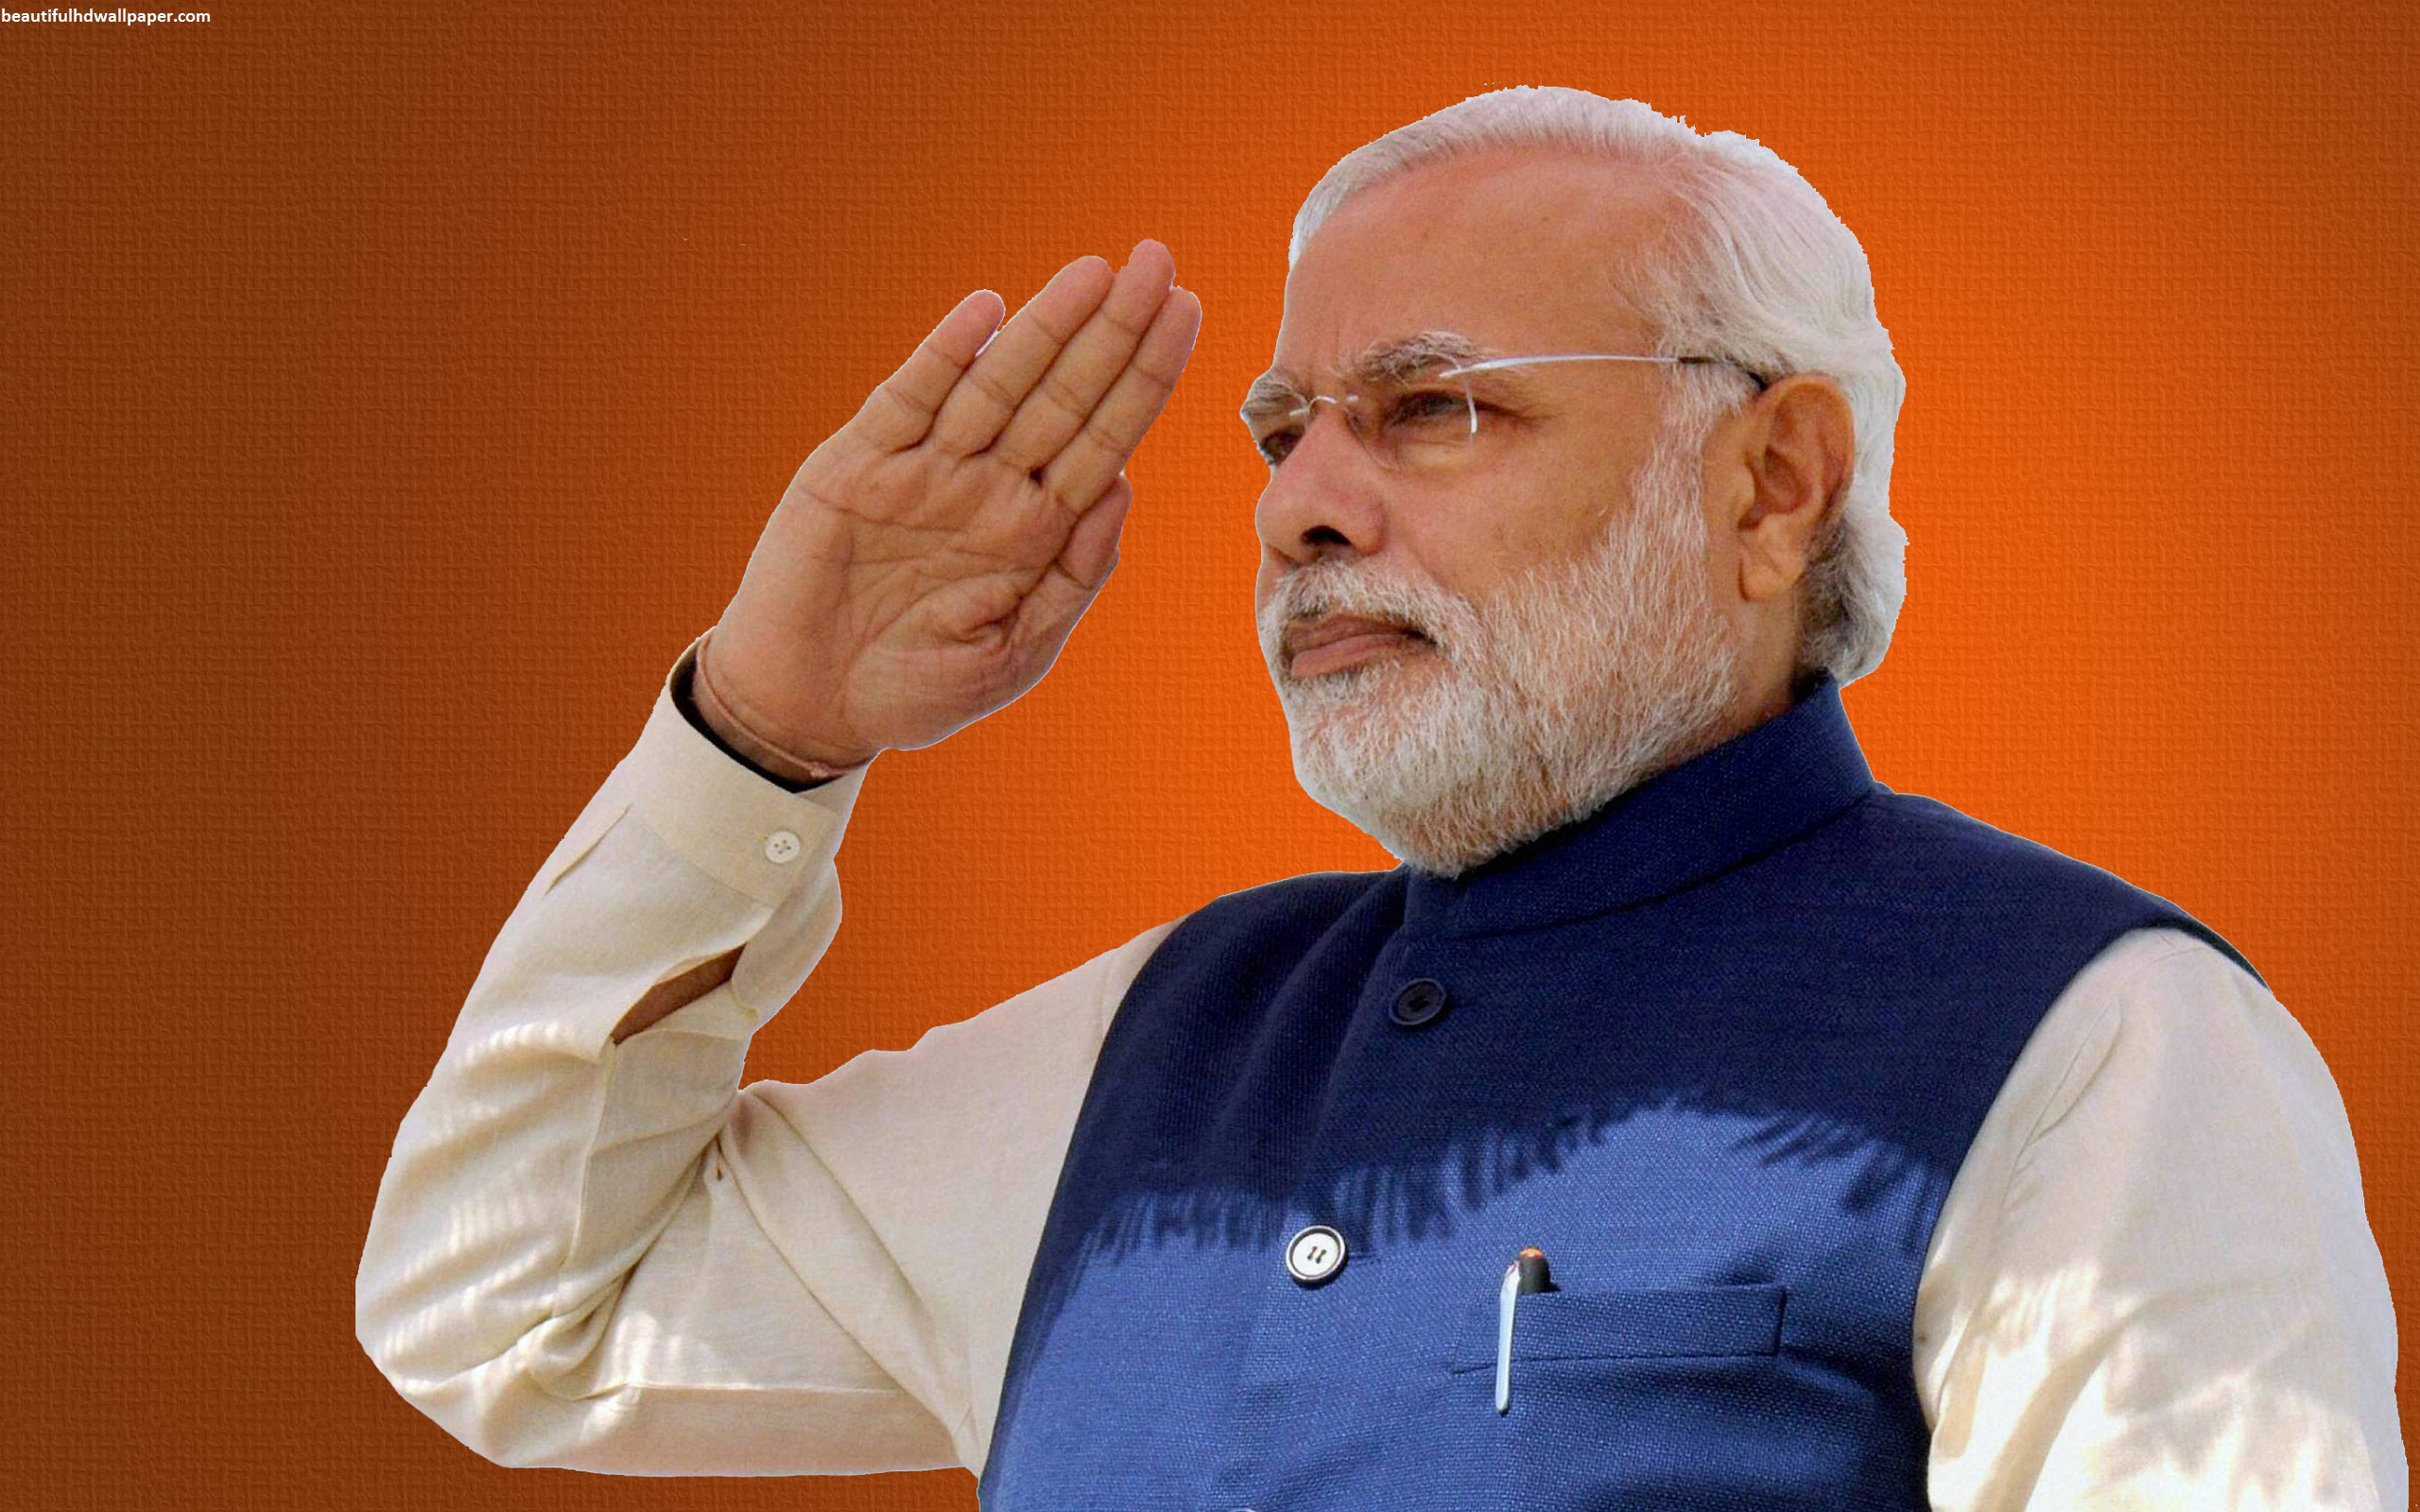 quotes from Narendra Modi's speech